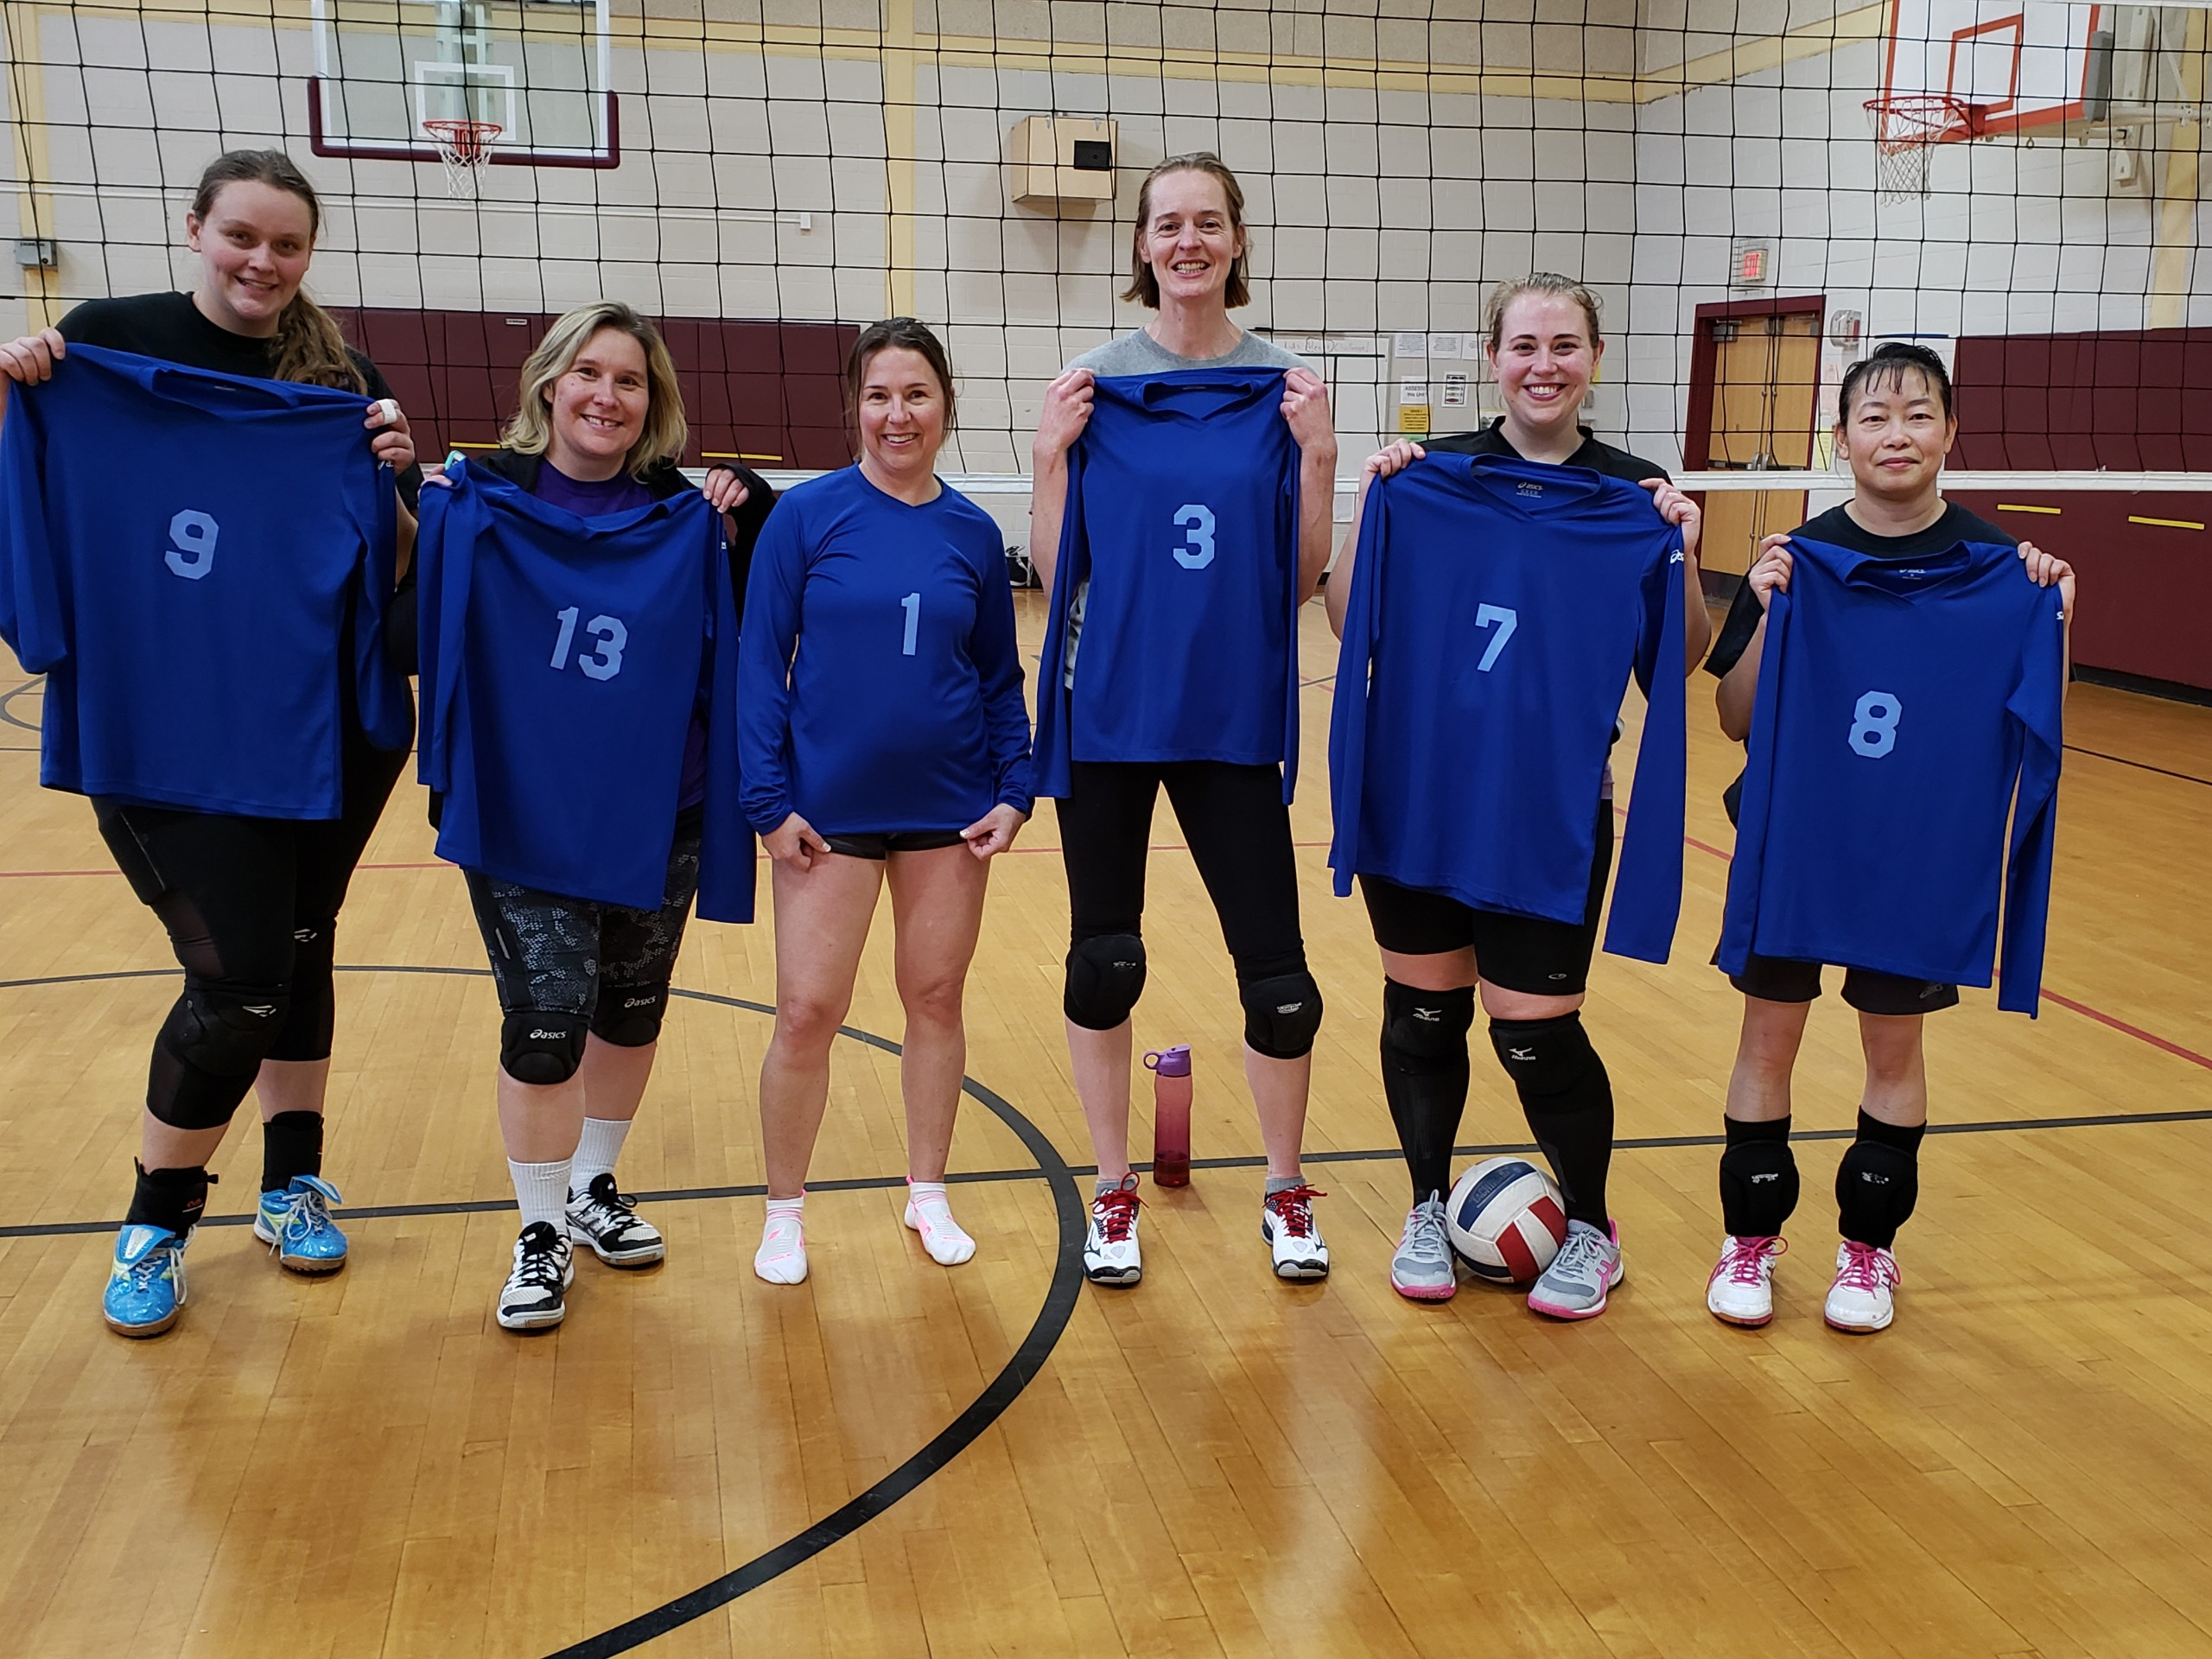 3/24/19 Mirage wins WC- at Bourne Elementary School